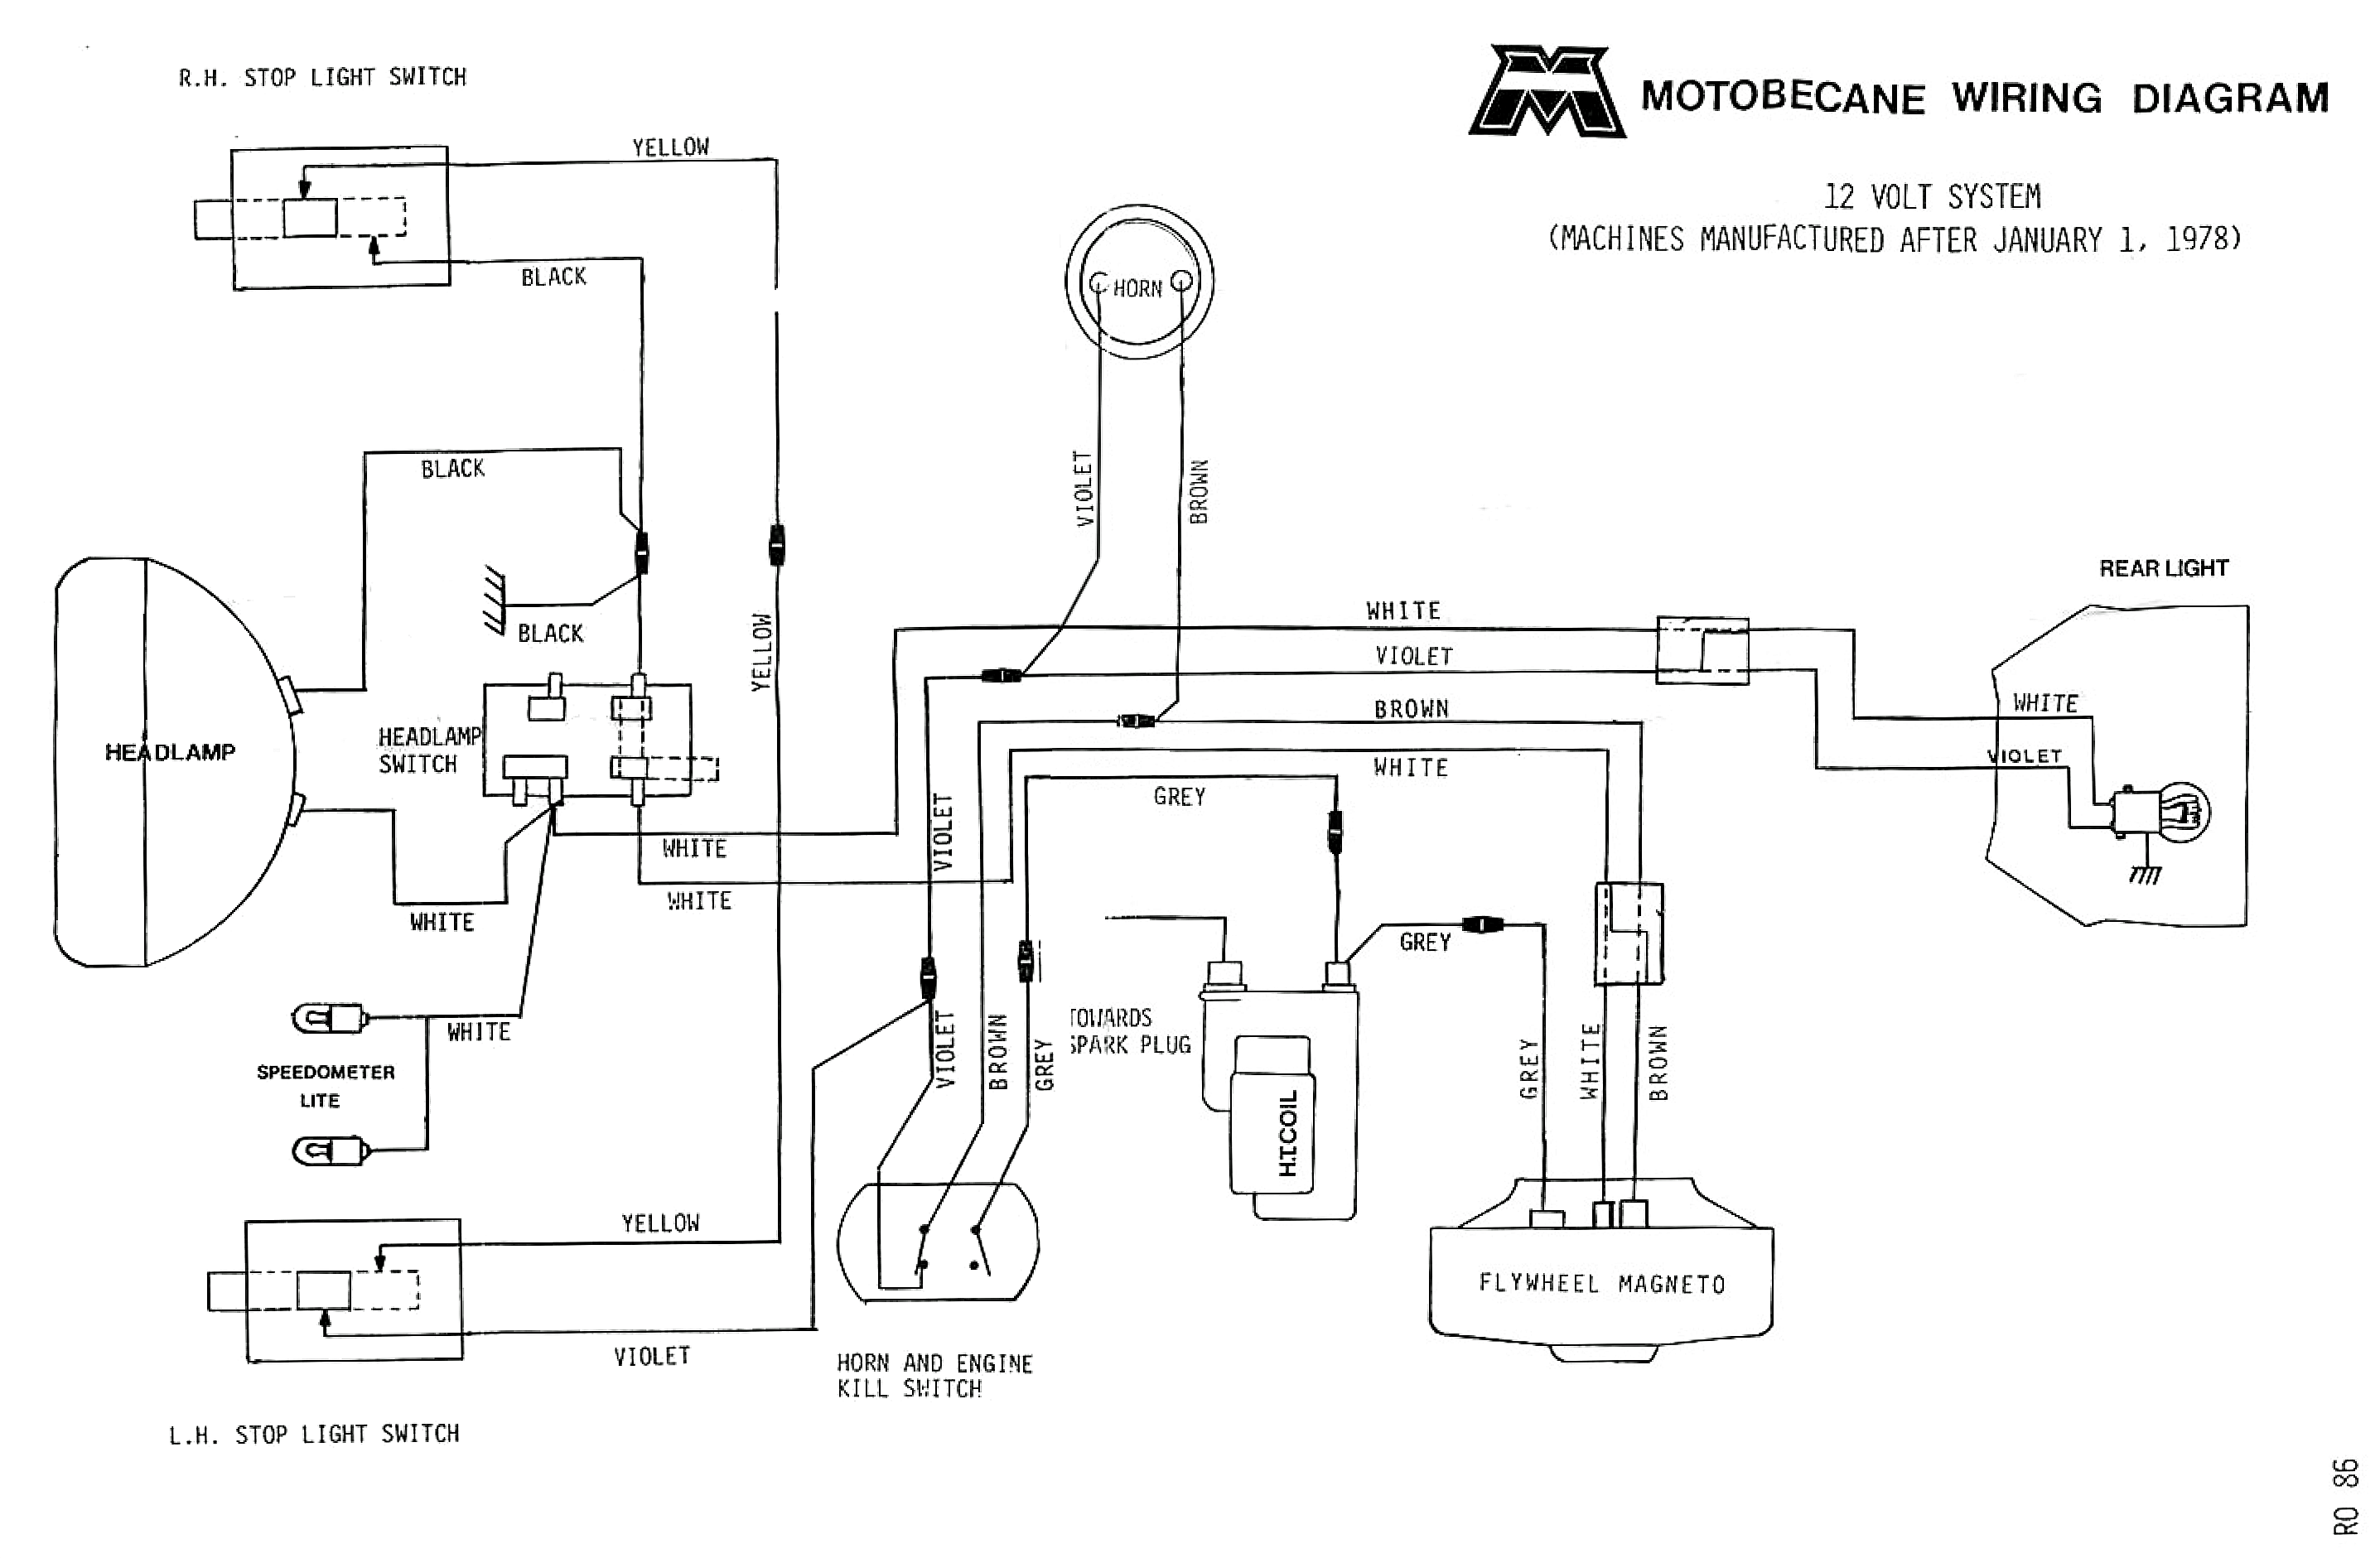 wiring connection diagram 5 pin trailer motobecane diagrams moped wiki